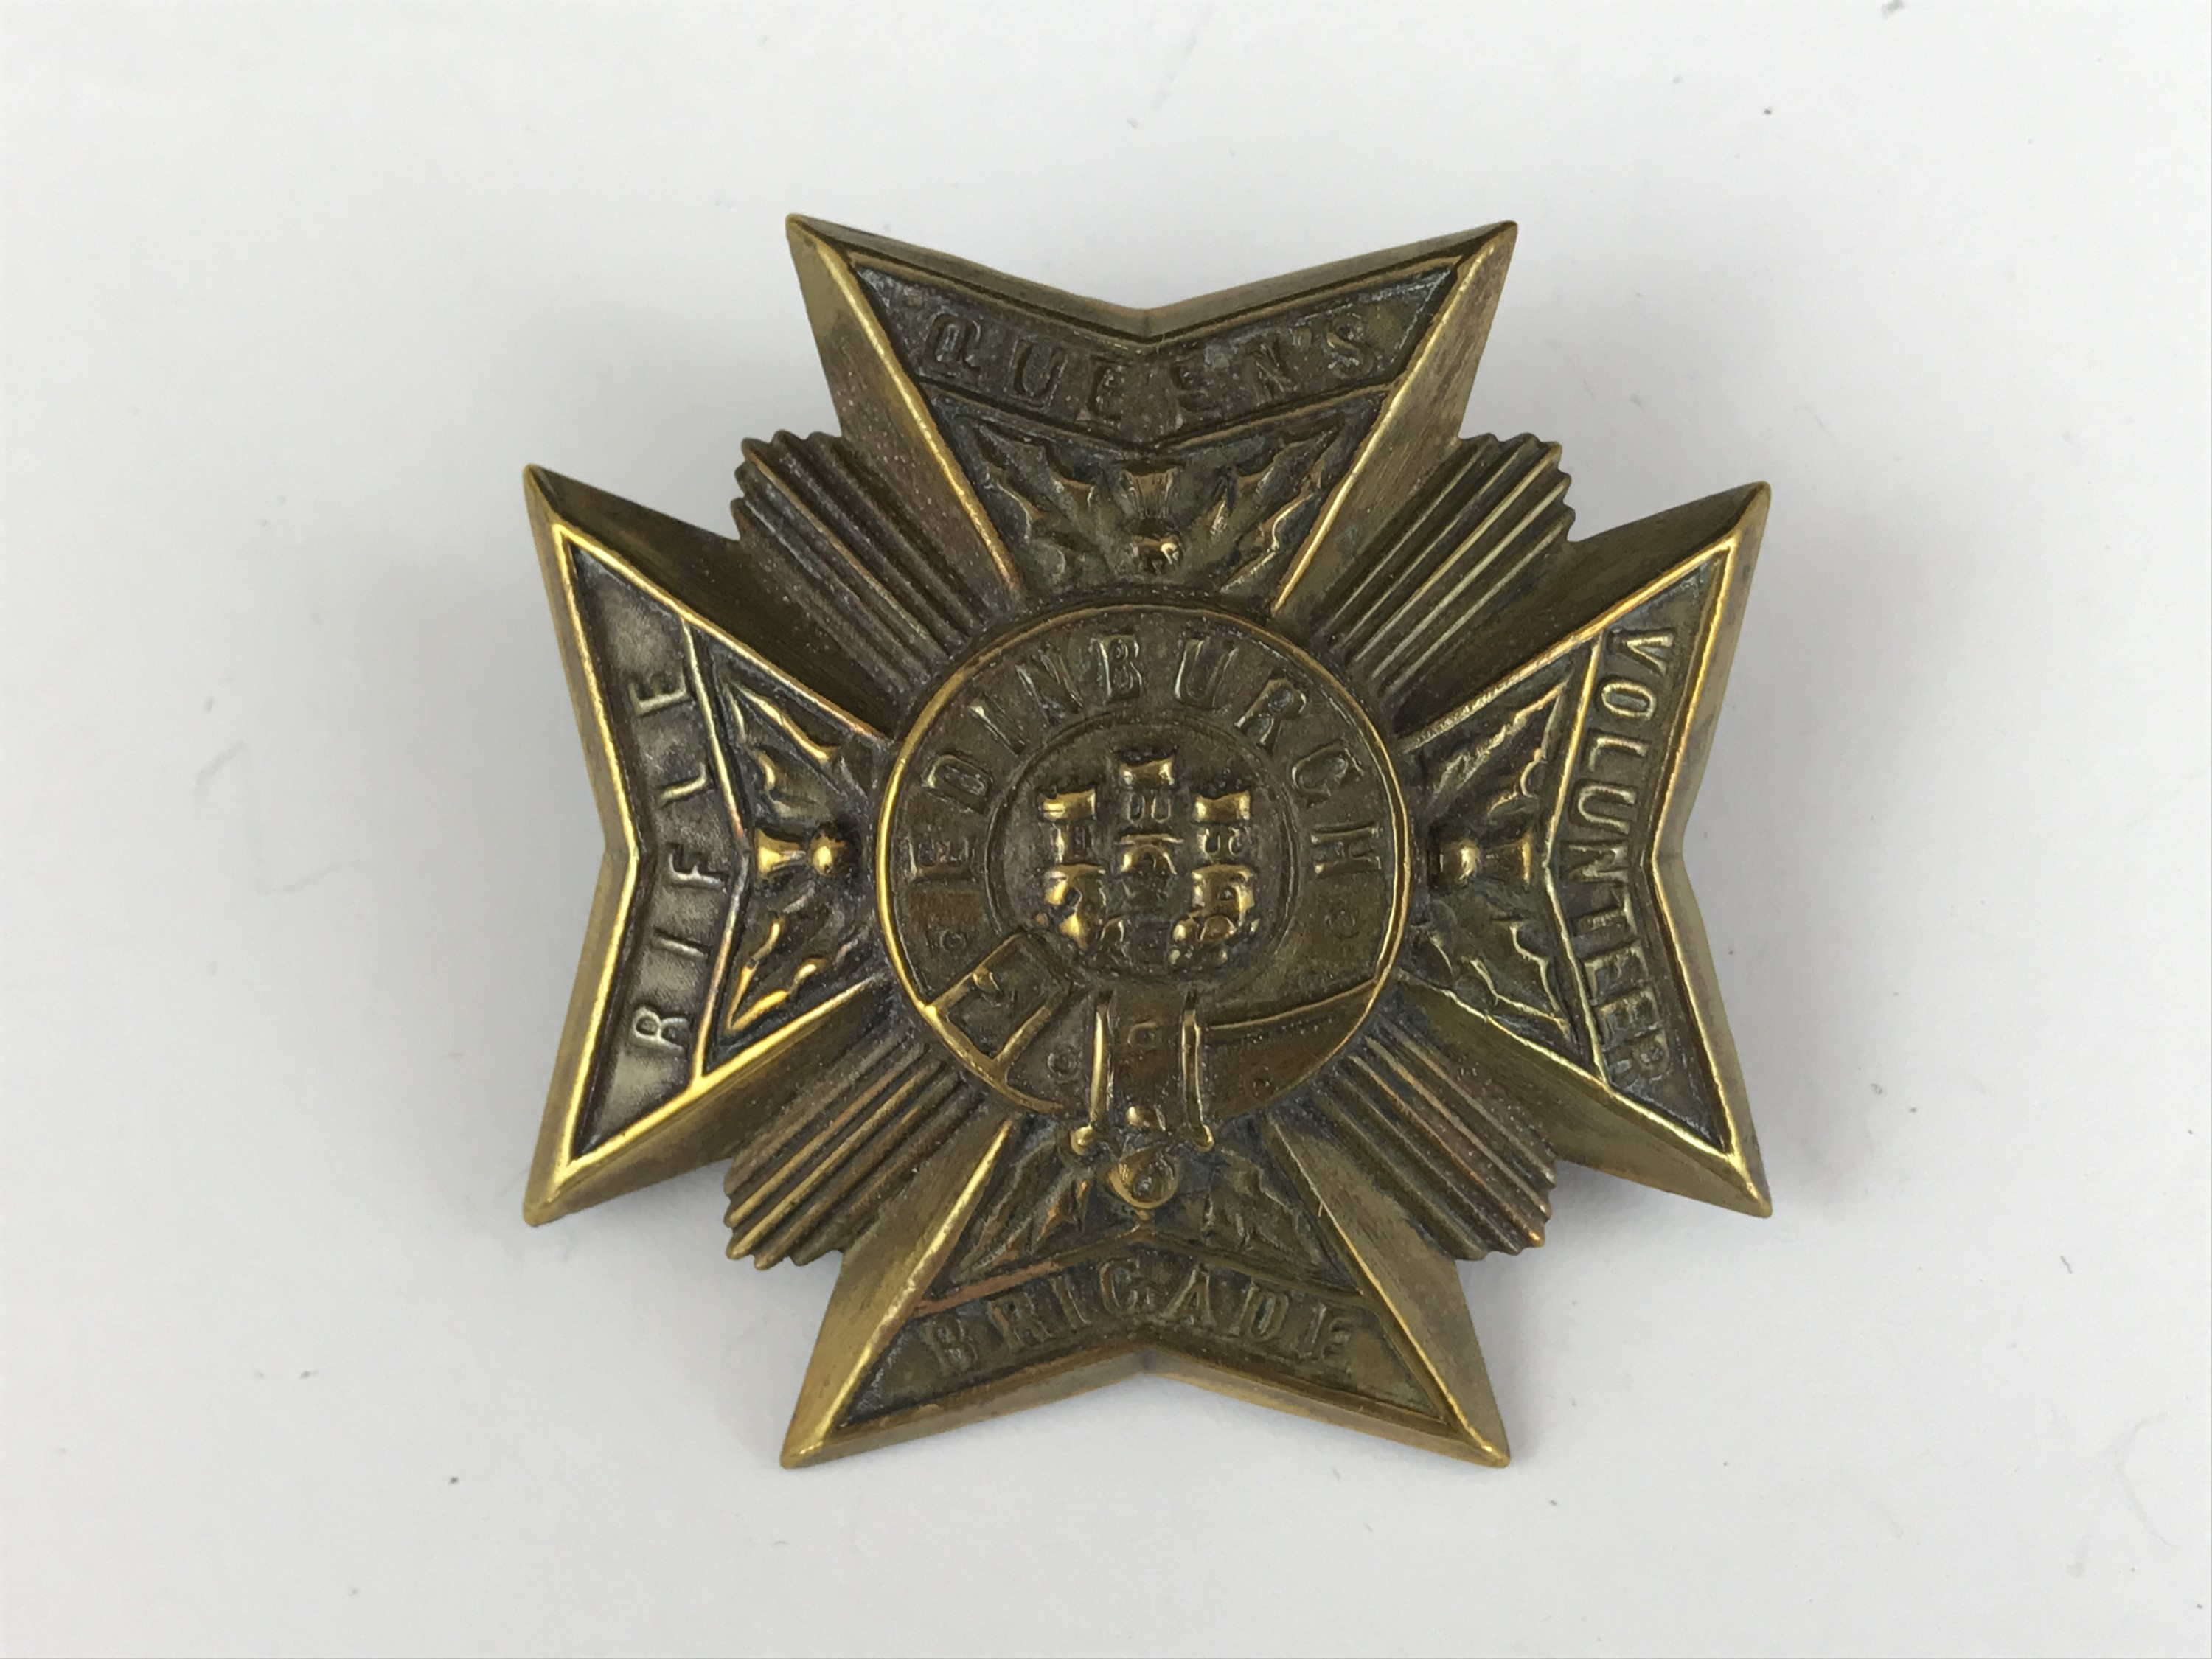 Lot 58 - A Queens Edinburgh Rifle Volunteer Brigade cap badge